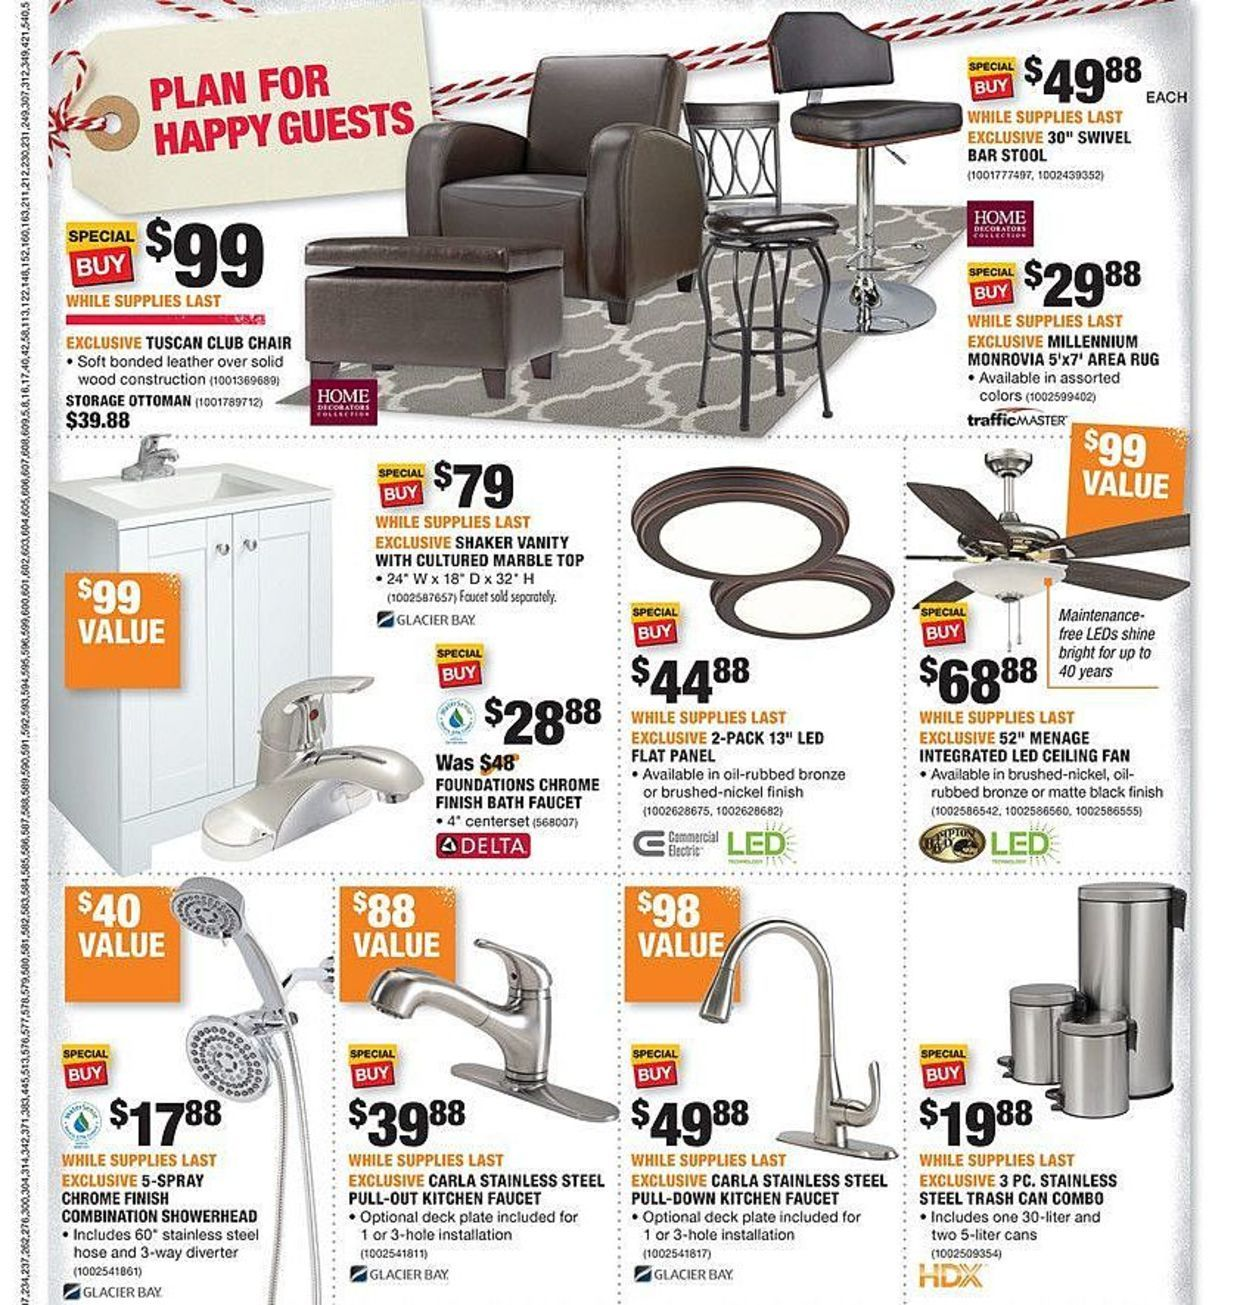 Fabulous Home Depot Black Friday 2017 Ads And Deals As Usual Home Spiritservingveterans Wood Chair Design Ideas Spiritservingveteransorg